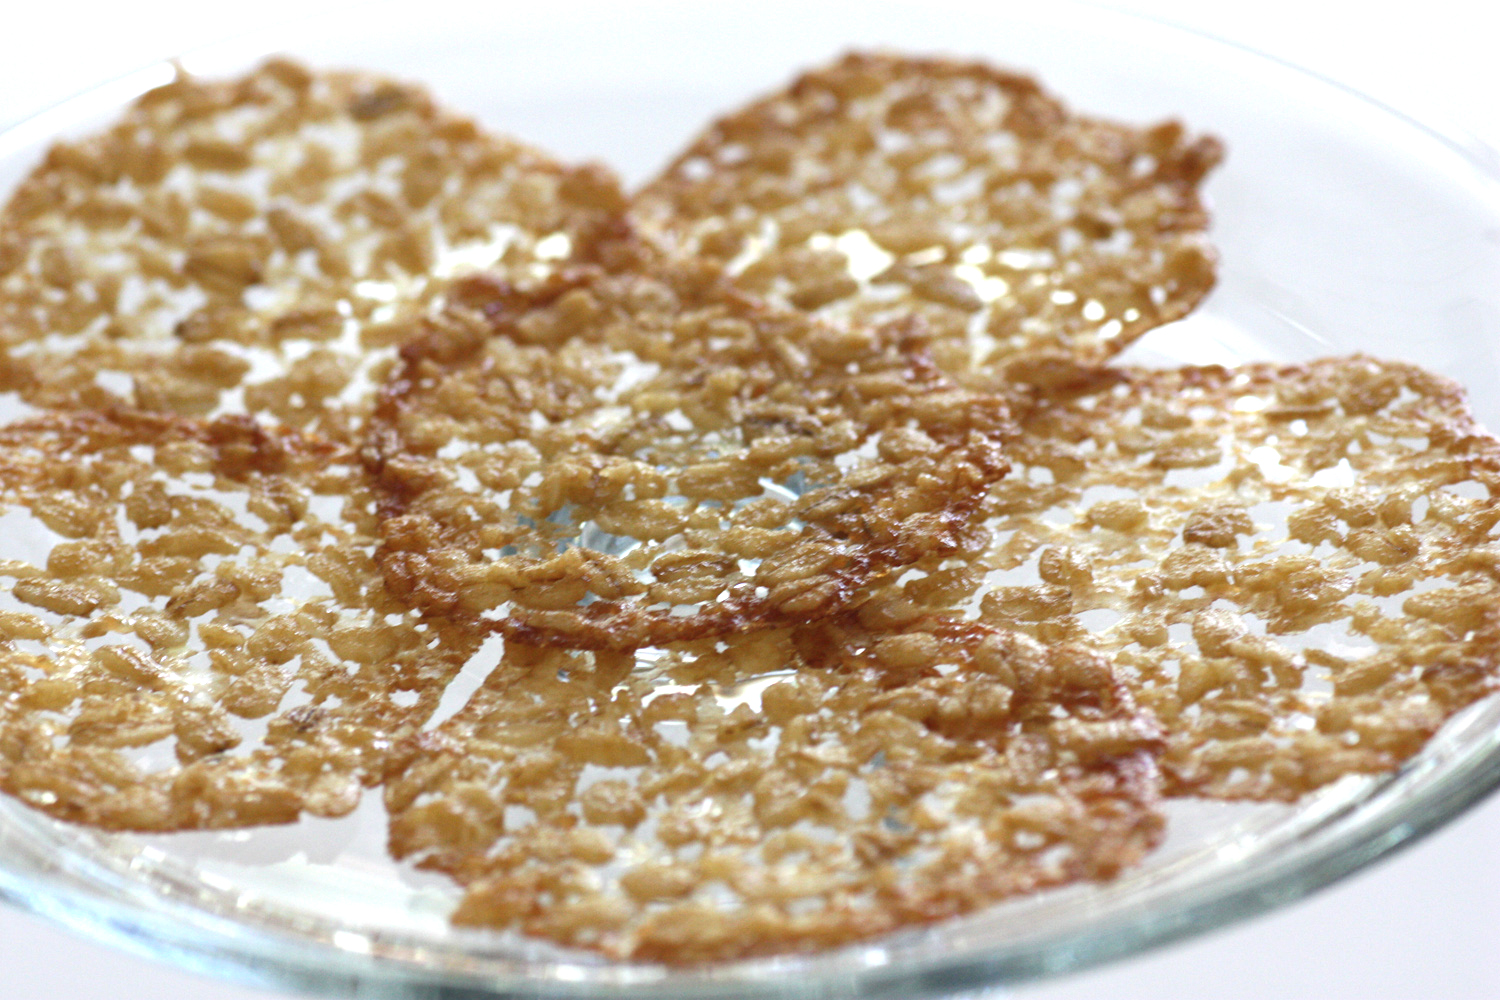 ... almond lace cookies swedish oatmeal lace meyer lemon lace tuiles